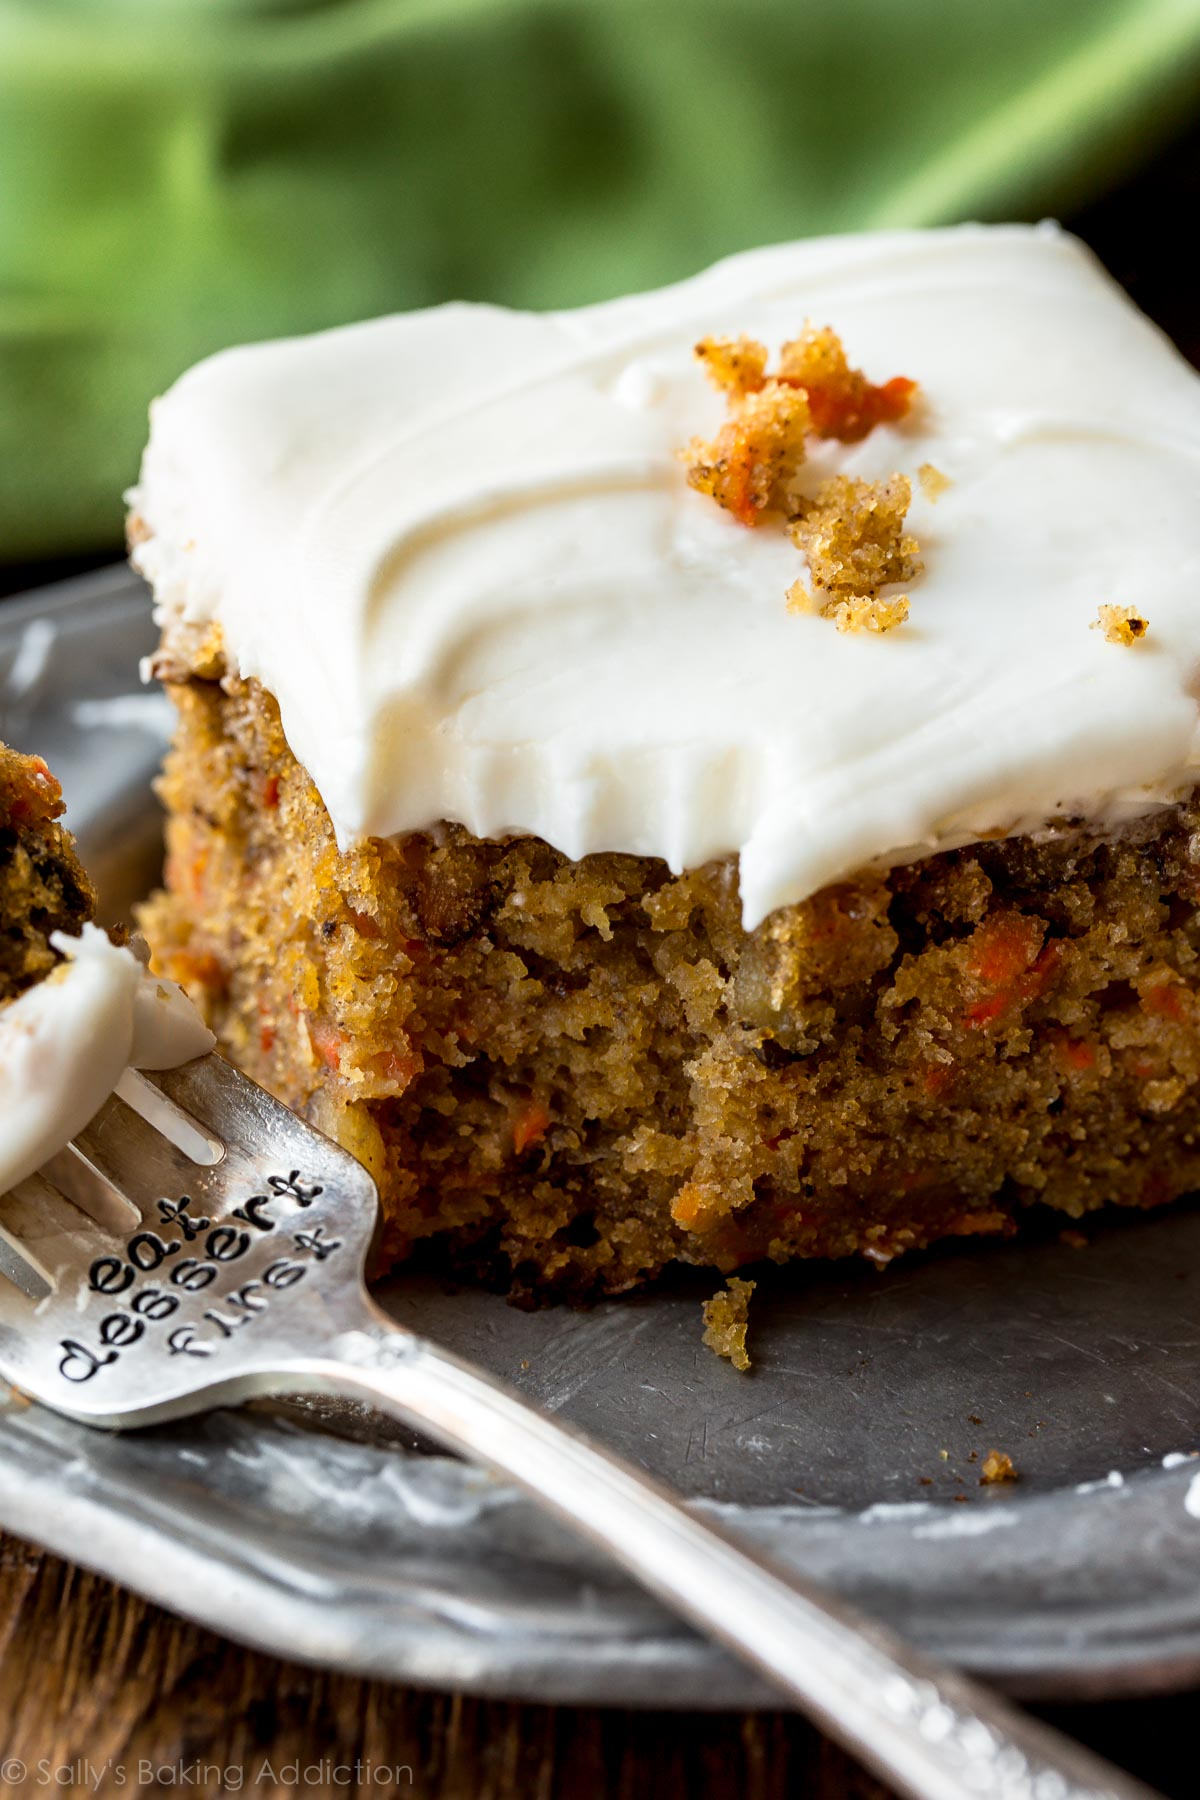 The best carrot cake recipe is this pineapple carrot cake with cream cheese frosting! Moist, spiced, and so easy! Dessert on sallysbakingaddiction.com